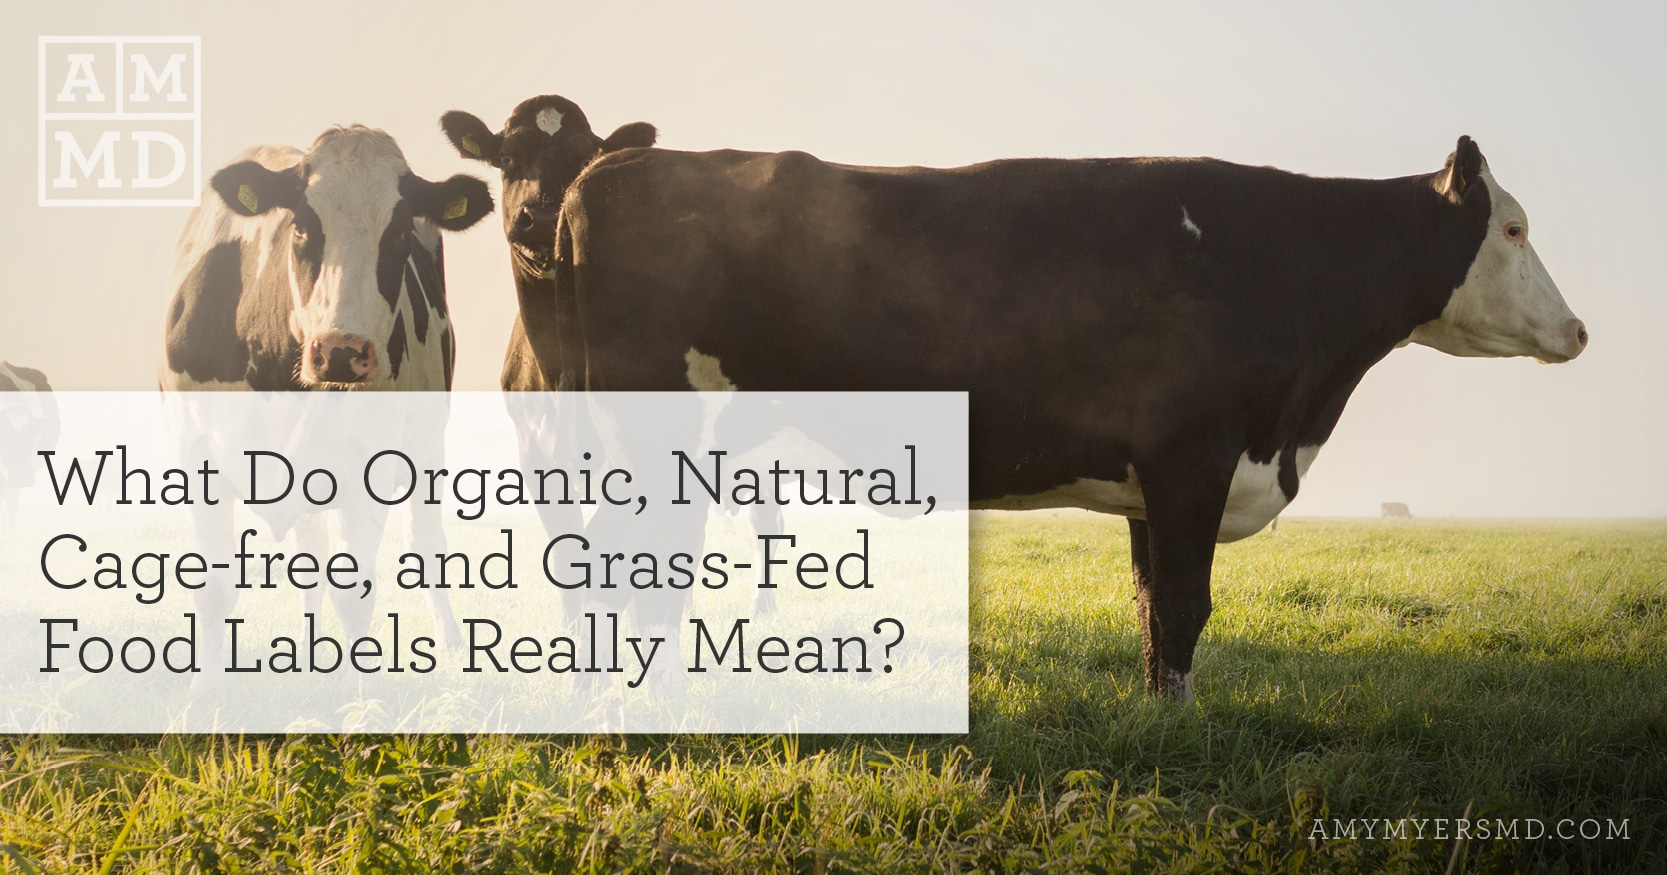 Organic Natural Cage-free Grass-Fed Food Labels